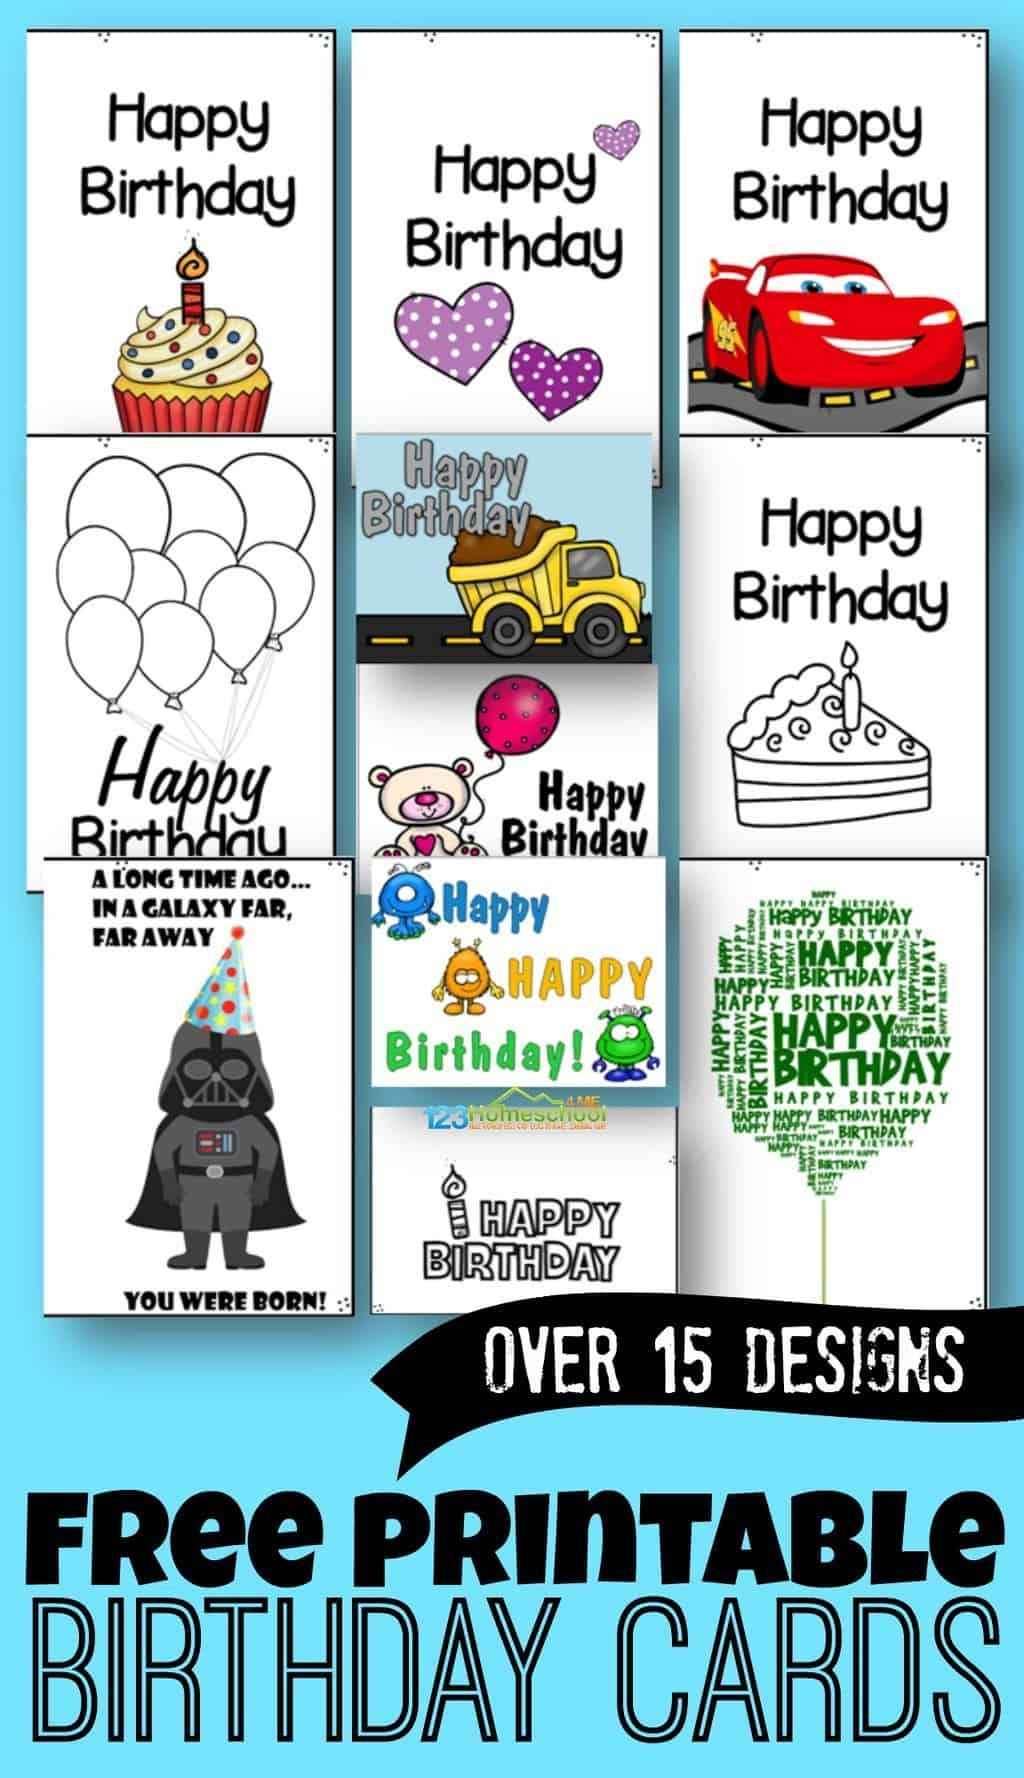 Pin By Tahni Miles On Arts Happy Birthday Cards Printable Free Printable Birthday Cards Birthday Cards To Print